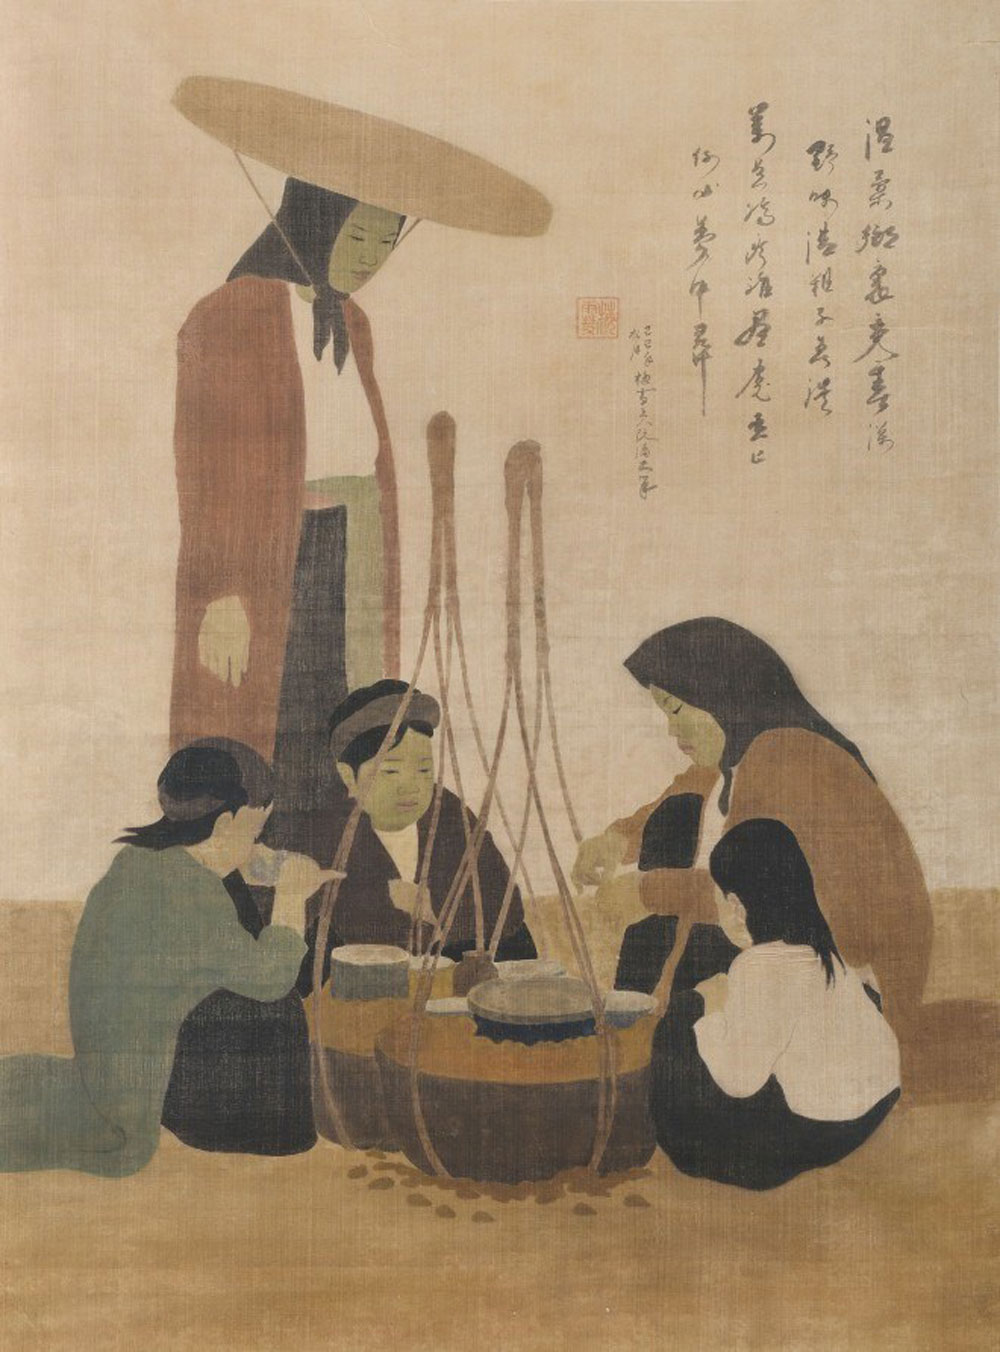 Vietnamese painting, Vietnamese artist, record price, silk painting, leading painters, contemporary fine arts, Christie's Hong Kong, highest price, Vietnamese artist, The Snail Seller